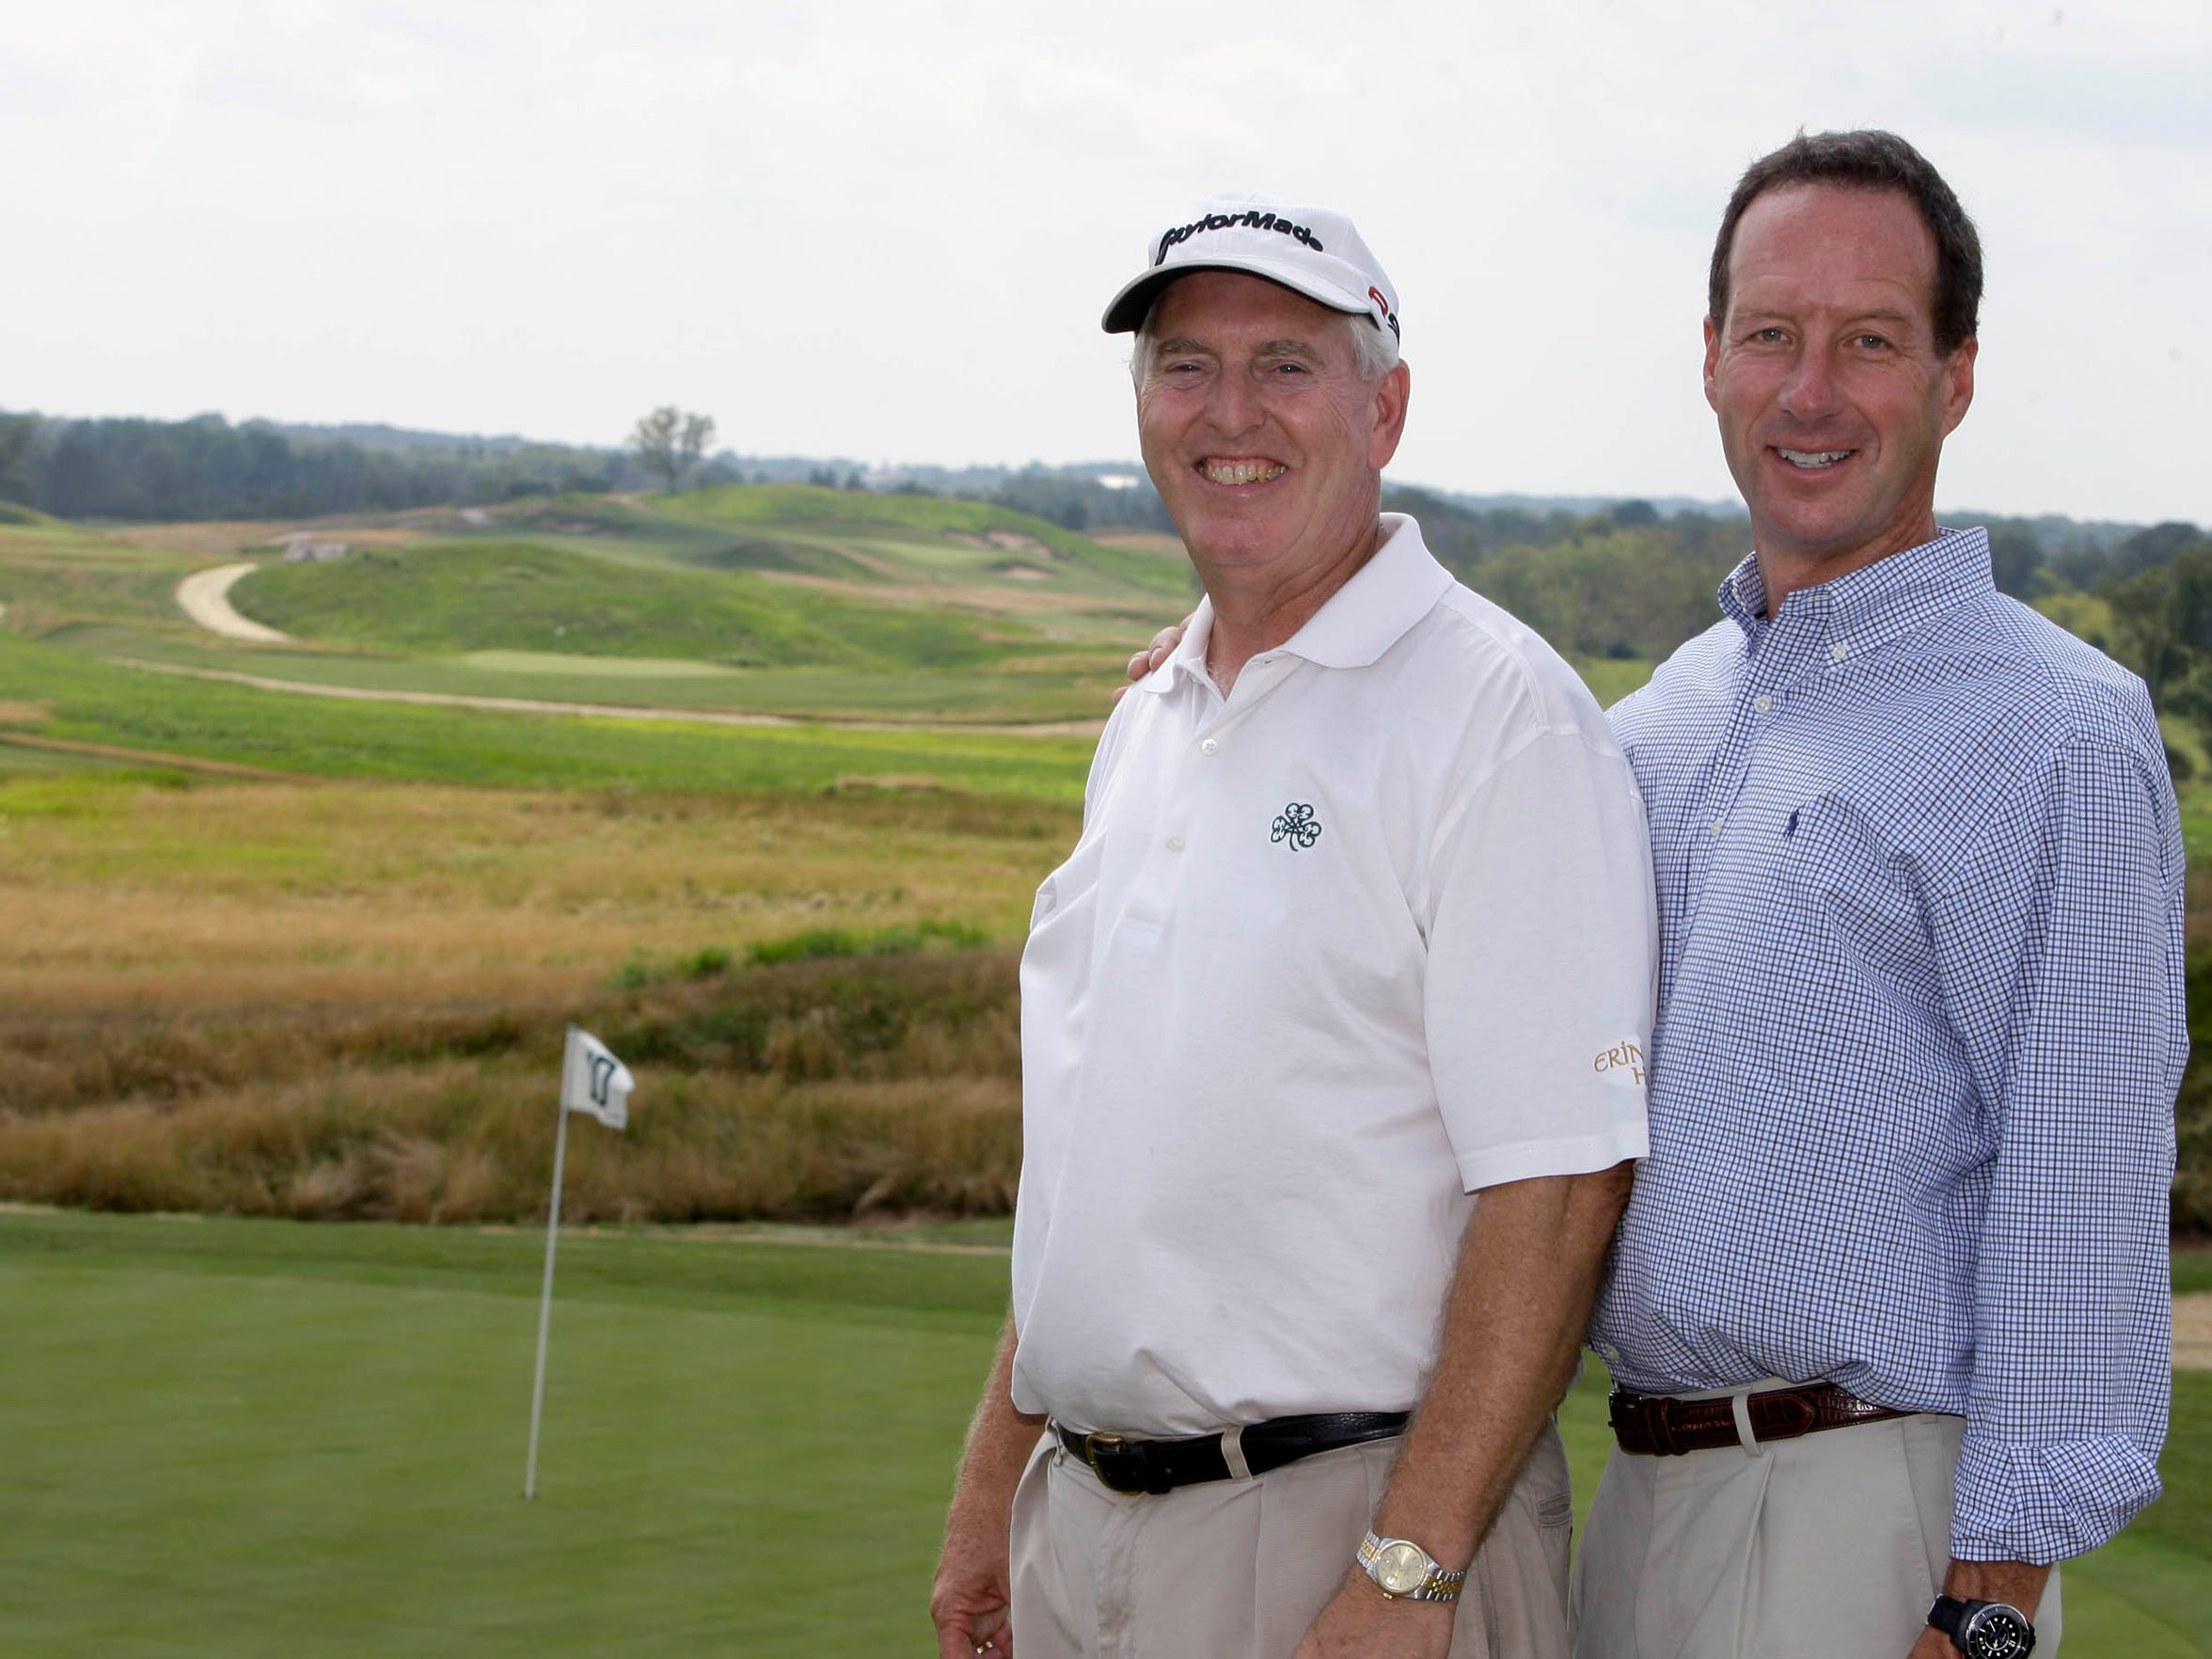 """Erin Hills owner Andy Ziegler (right) poses with Rich Tock in 2010. One of Ziegler's first moves when he bought Erin Hills was to hire Tock, the longtime pro at Ozaukee Country Club and an old friend, to be the course's """"professional ambassador."""""""